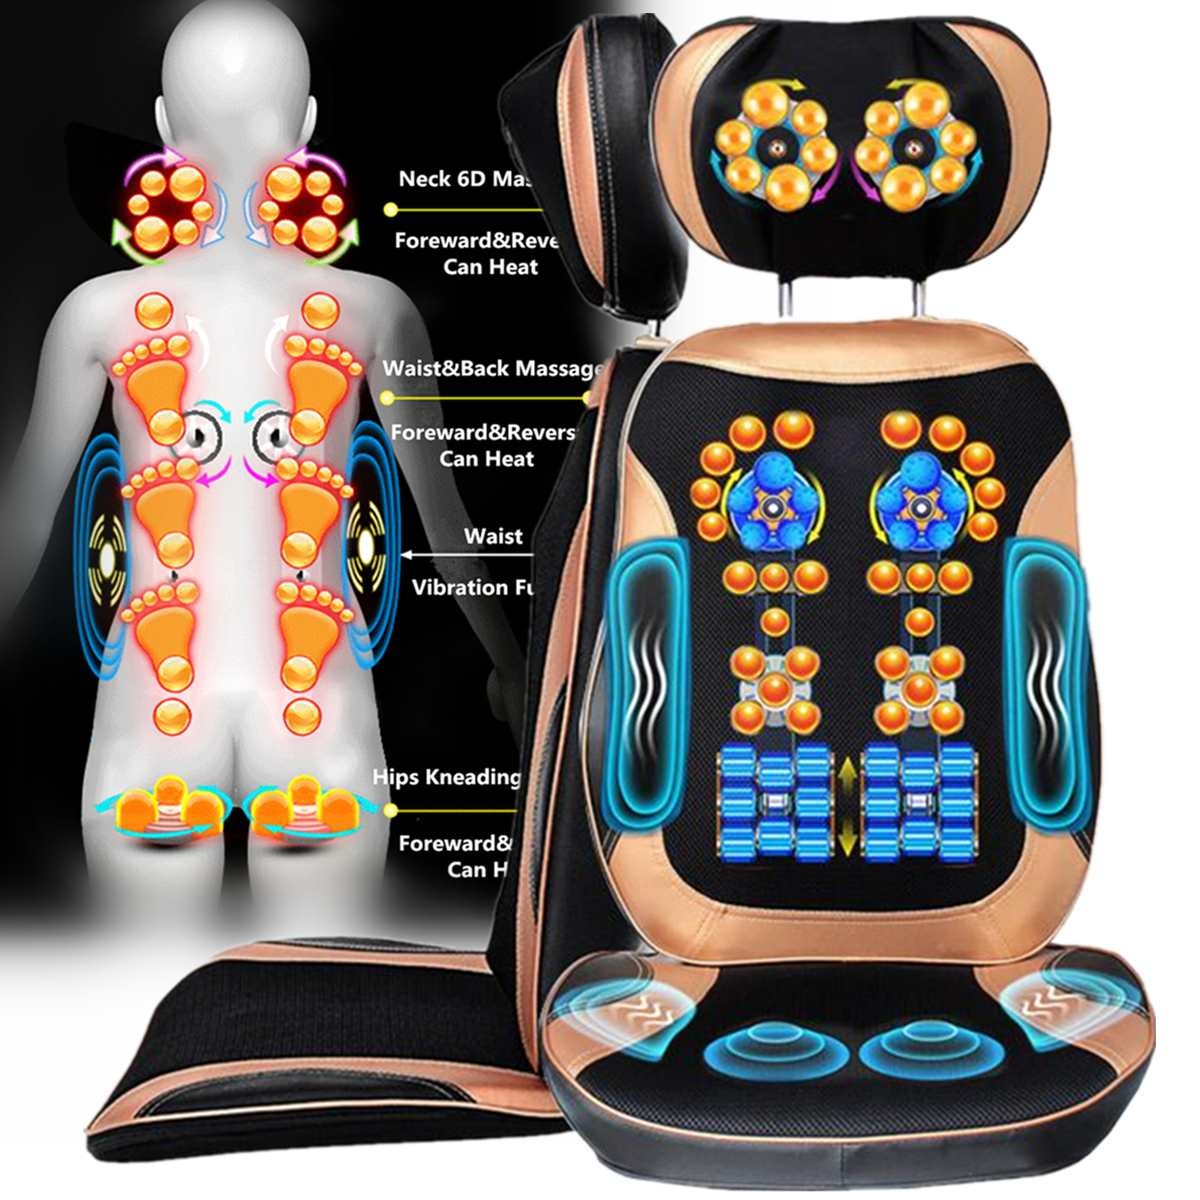 Antistress Full Body Electric Massage Cushion Heat Neck Back Cervica Shiatsu Massage Chair Compresses Vibration Kneading MassageAntistress Full Body Electric Massage Cushion Heat Neck Back Cervica Shiatsu Massage Chair Compresses Vibration Kneading Massage